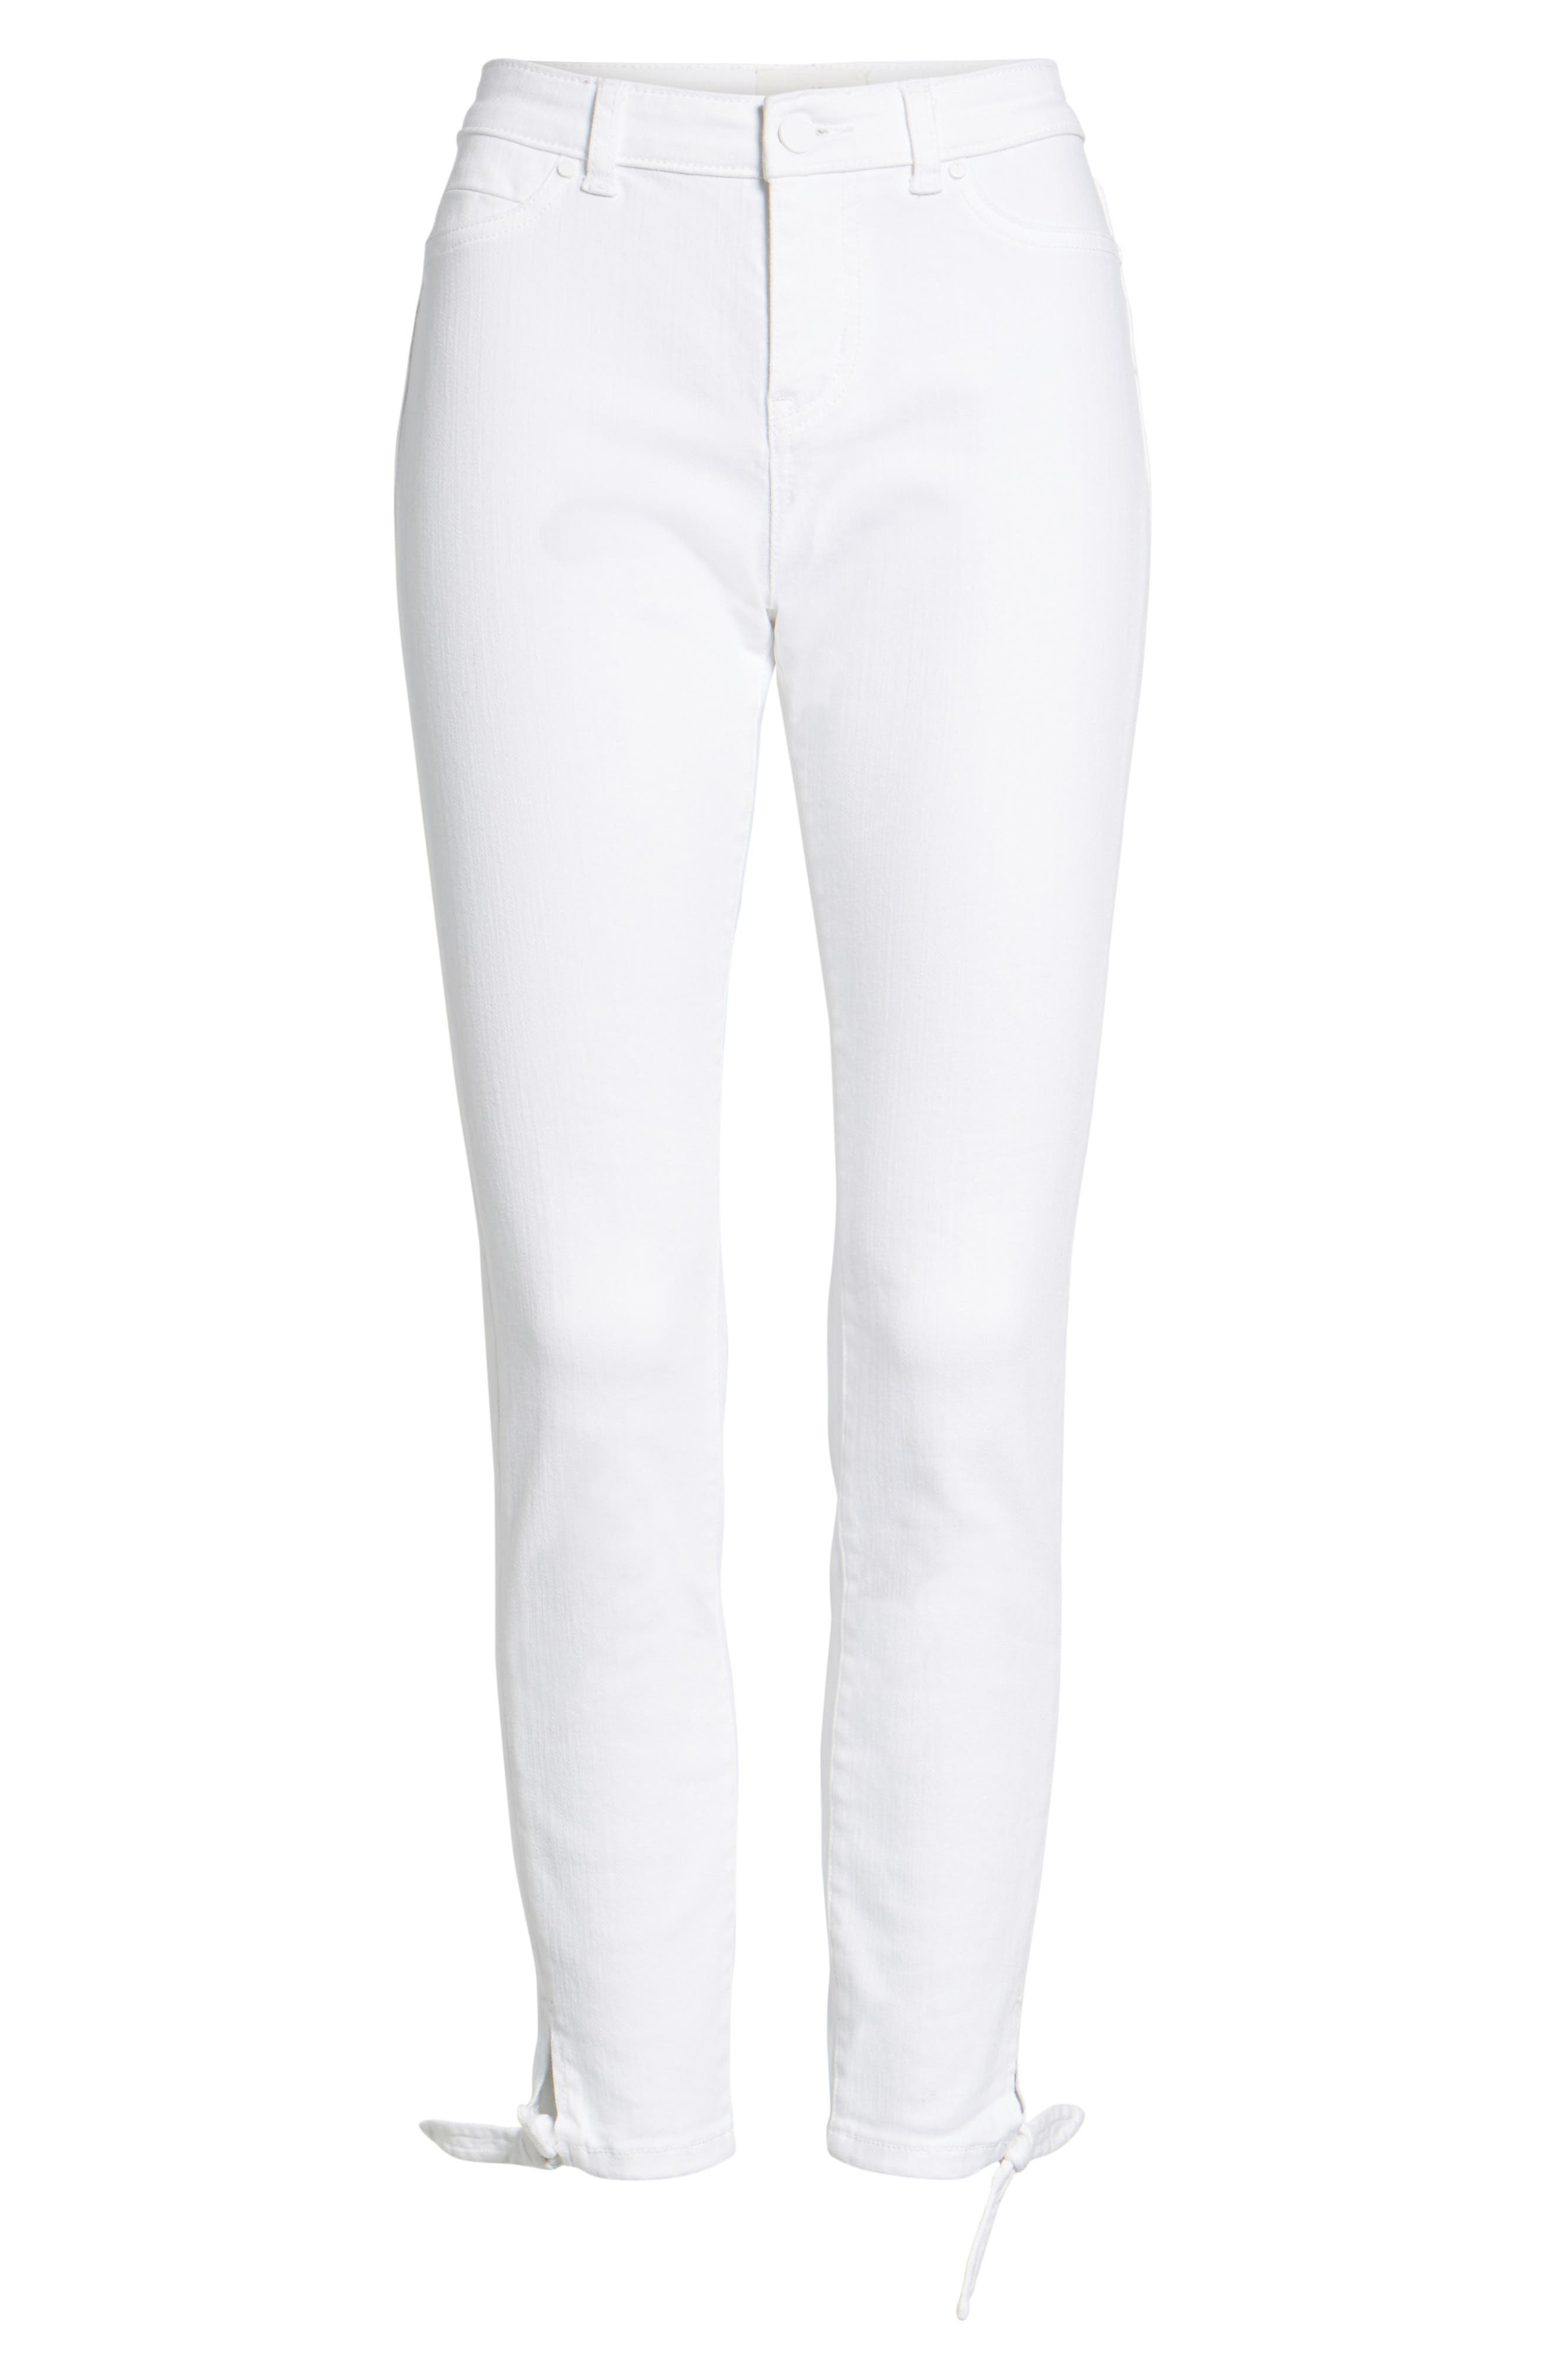 Tie Ankle Skinny Jeans,                             Alternate thumbnail 8, color,                             White